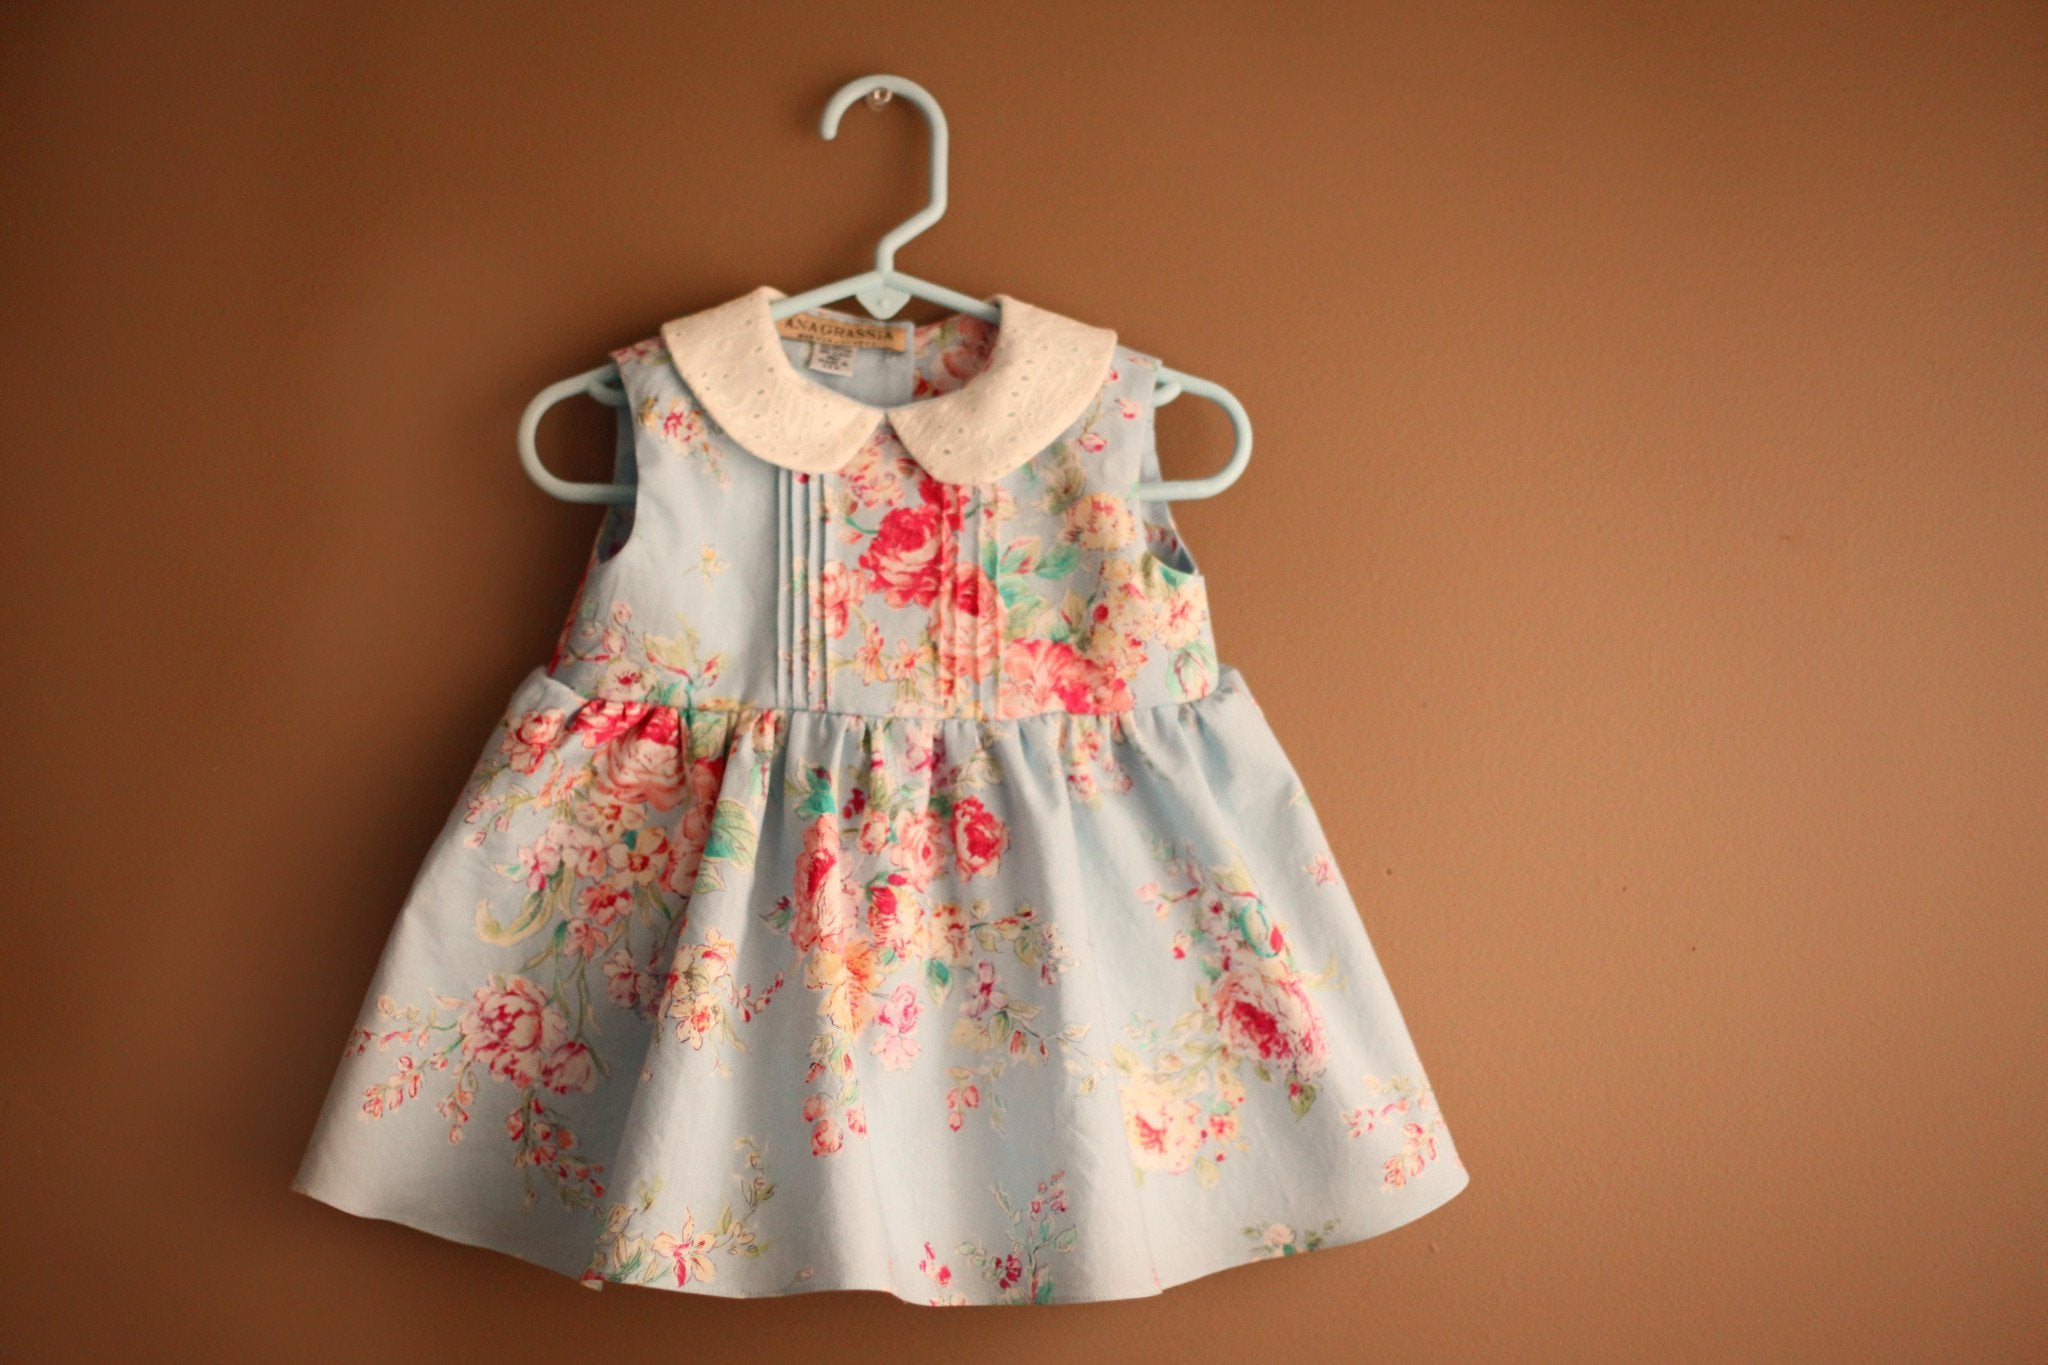 Anagrassia Light Blue Rose Floral Dress